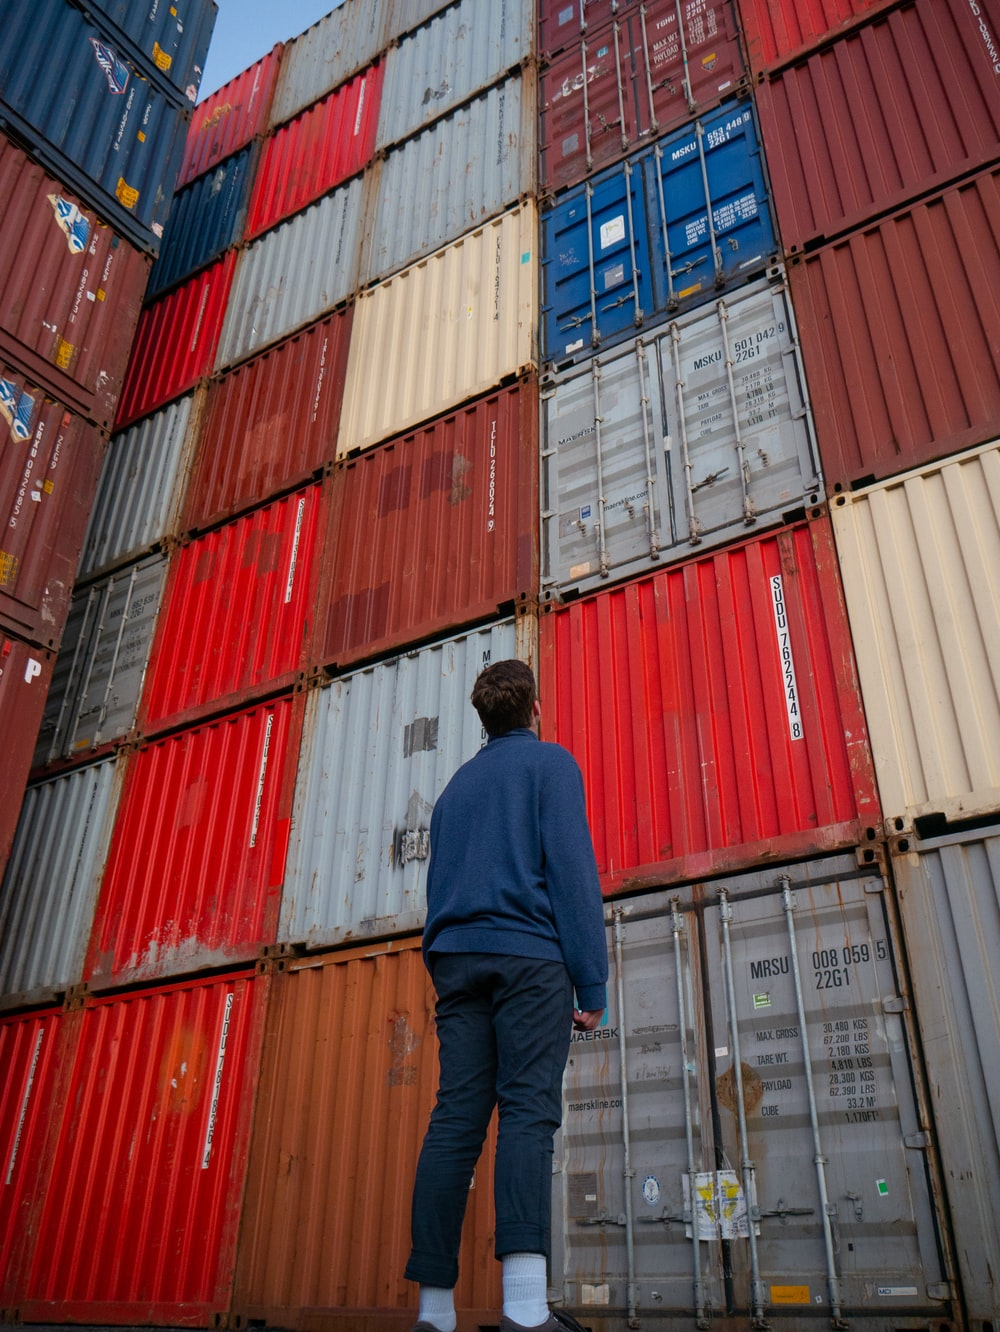 man in blue long sleeve shirt standing in front of red and blue intermodal containers